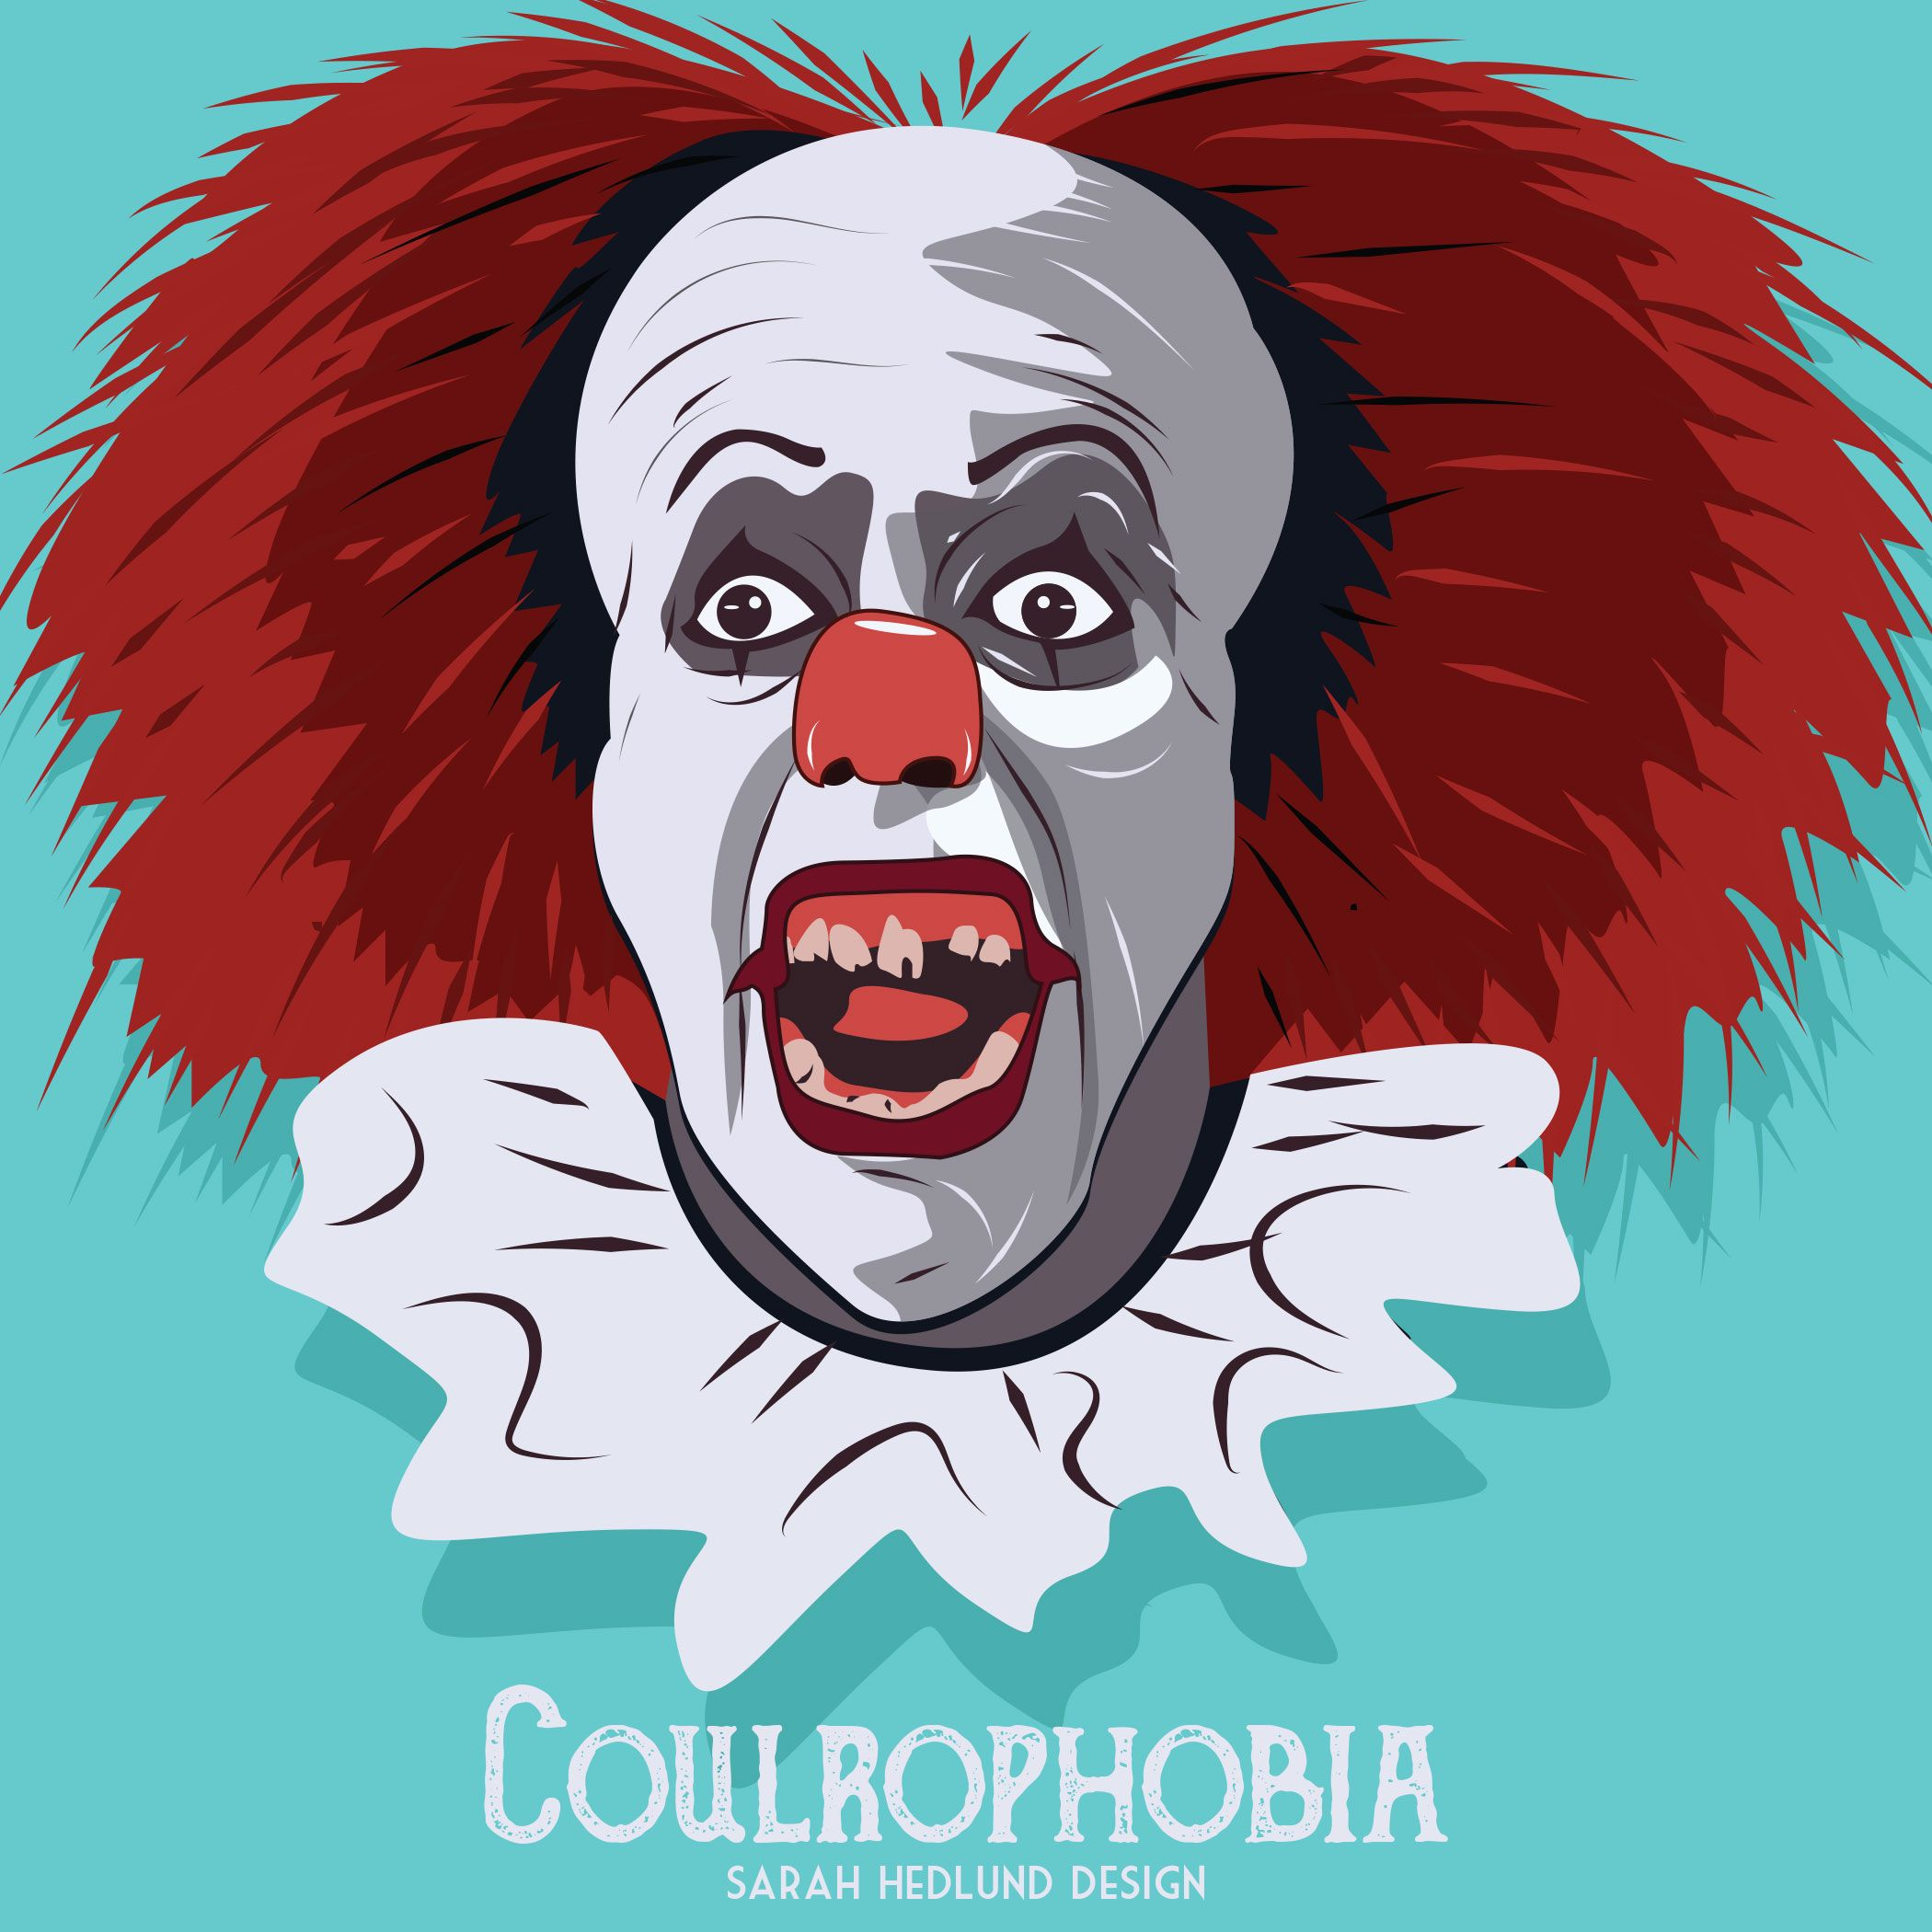 day 25, coulrophobia: fear of clowns, i was scared to walk past